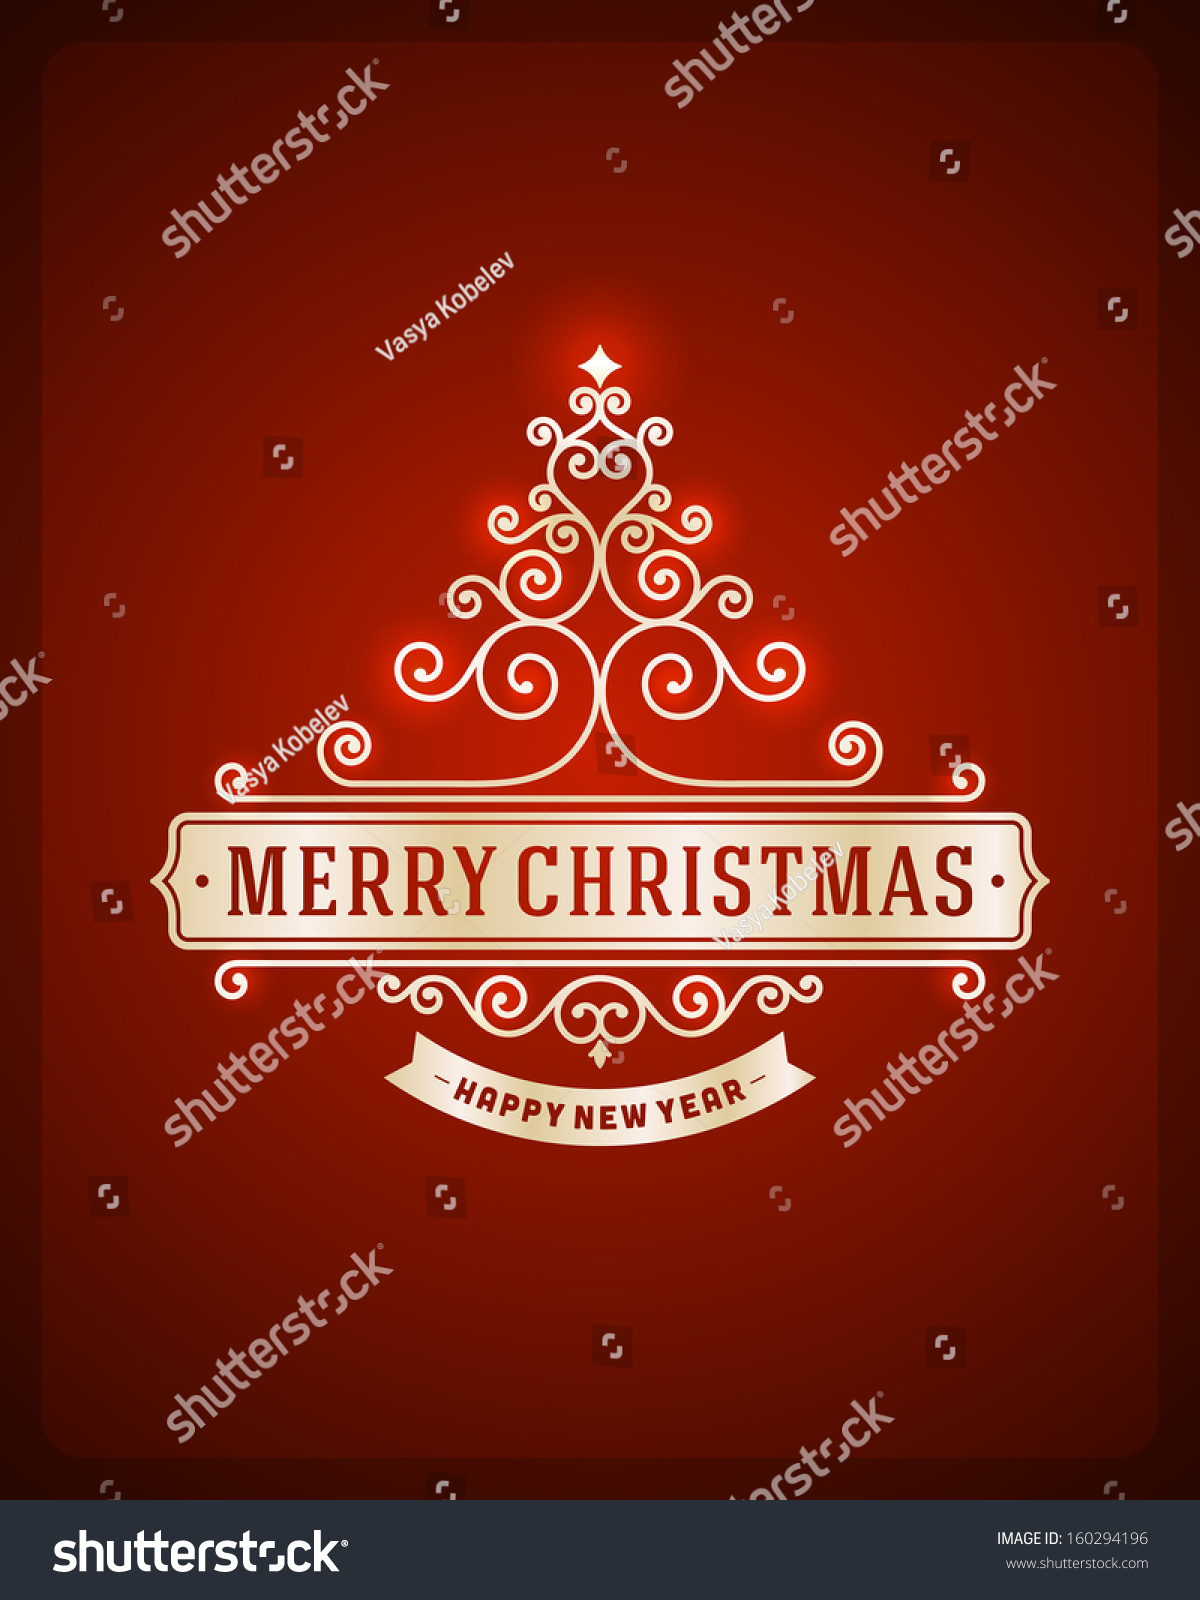 Christmas tree from flourishes calligraphic background